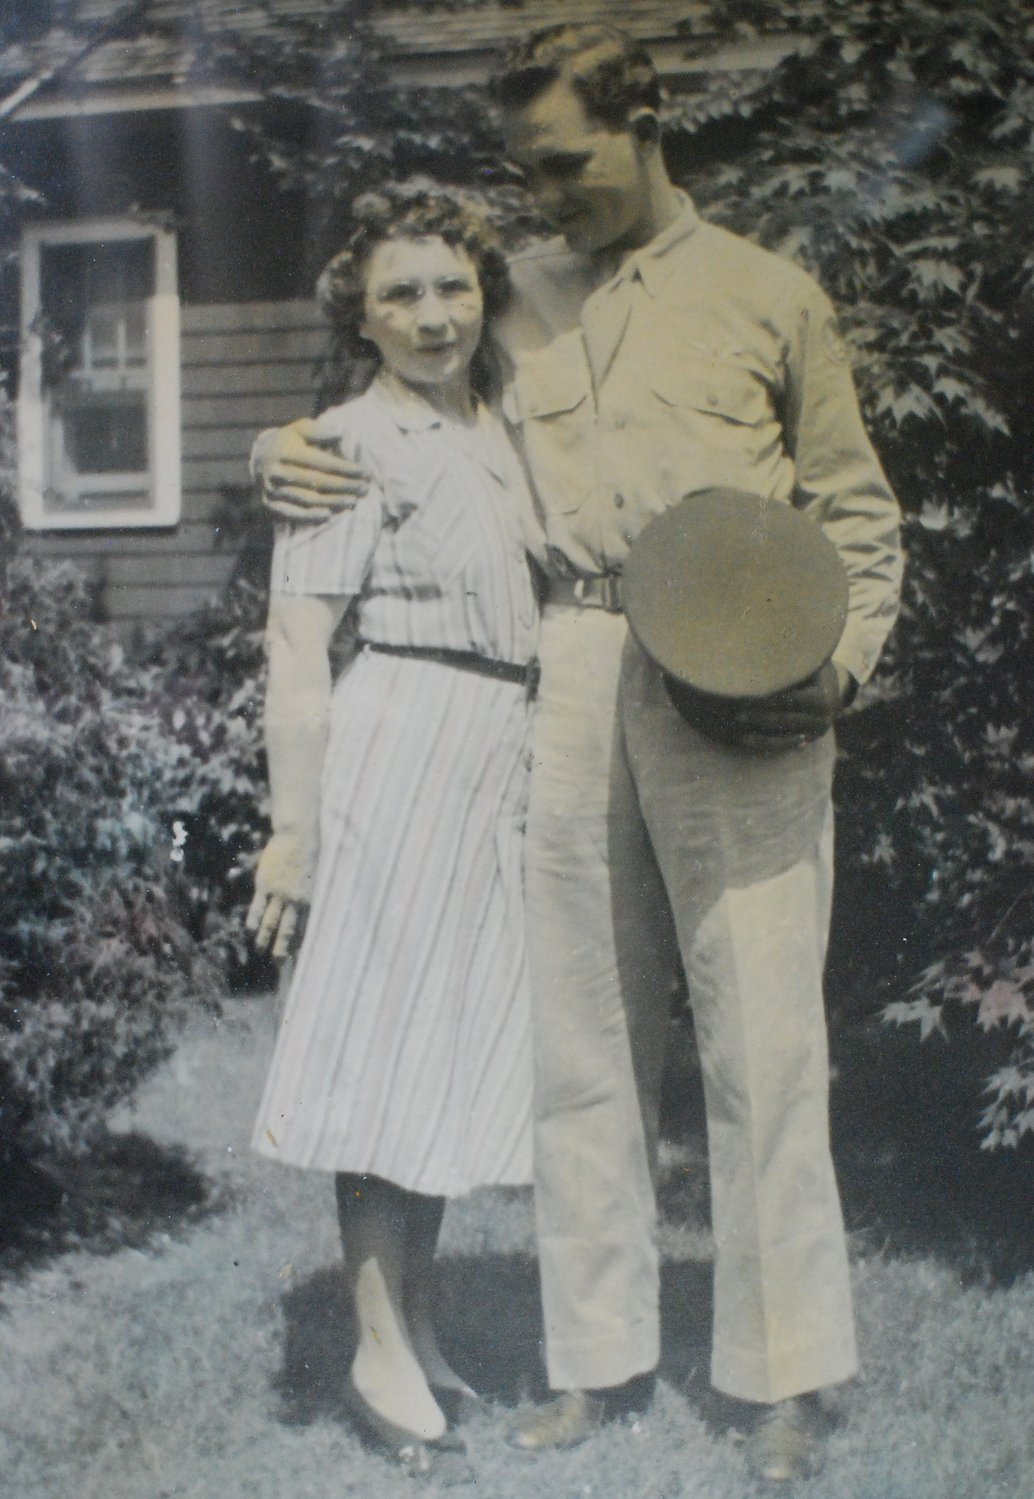 Bob Wieboldt with his mother, Emma, at their Kenny Avenue home in Merrick during World War II.